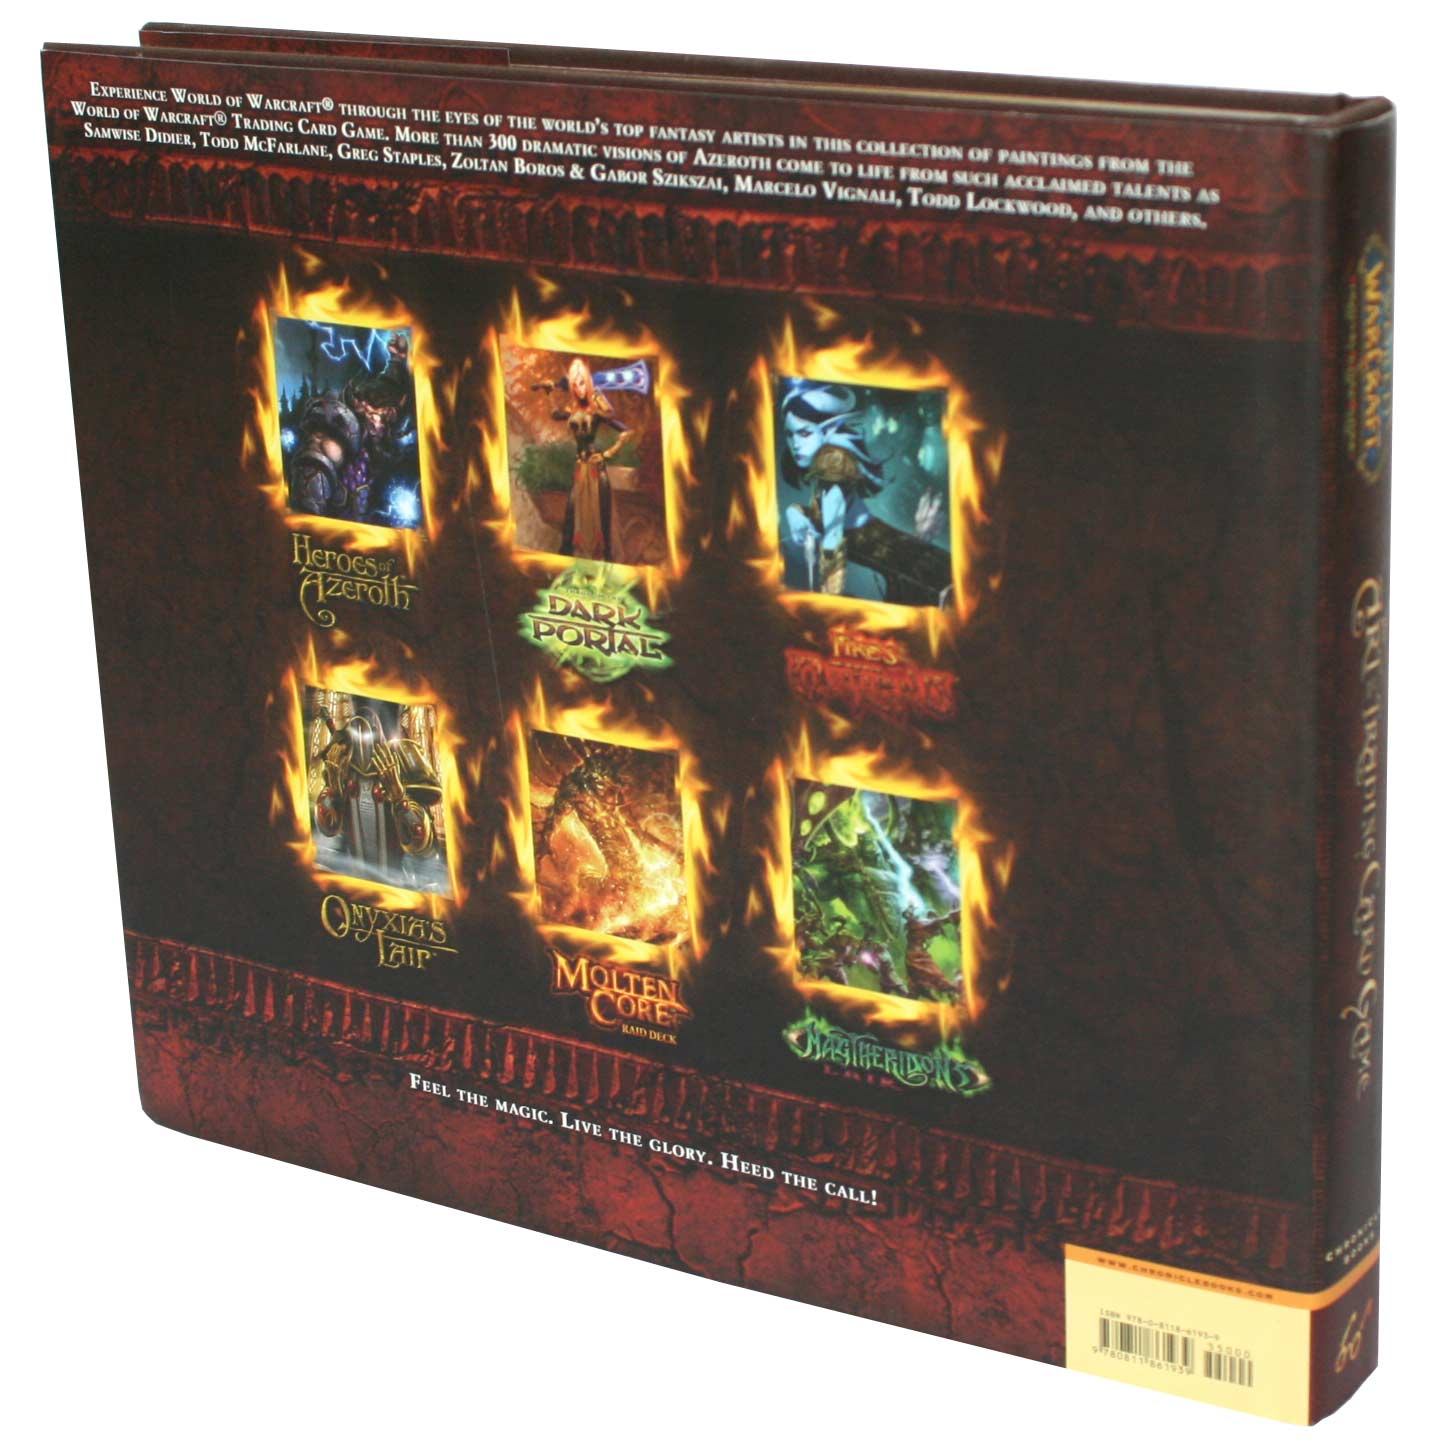 World of Warcraft : The Art of the Trading Card Game (Art book) - dos de couverture